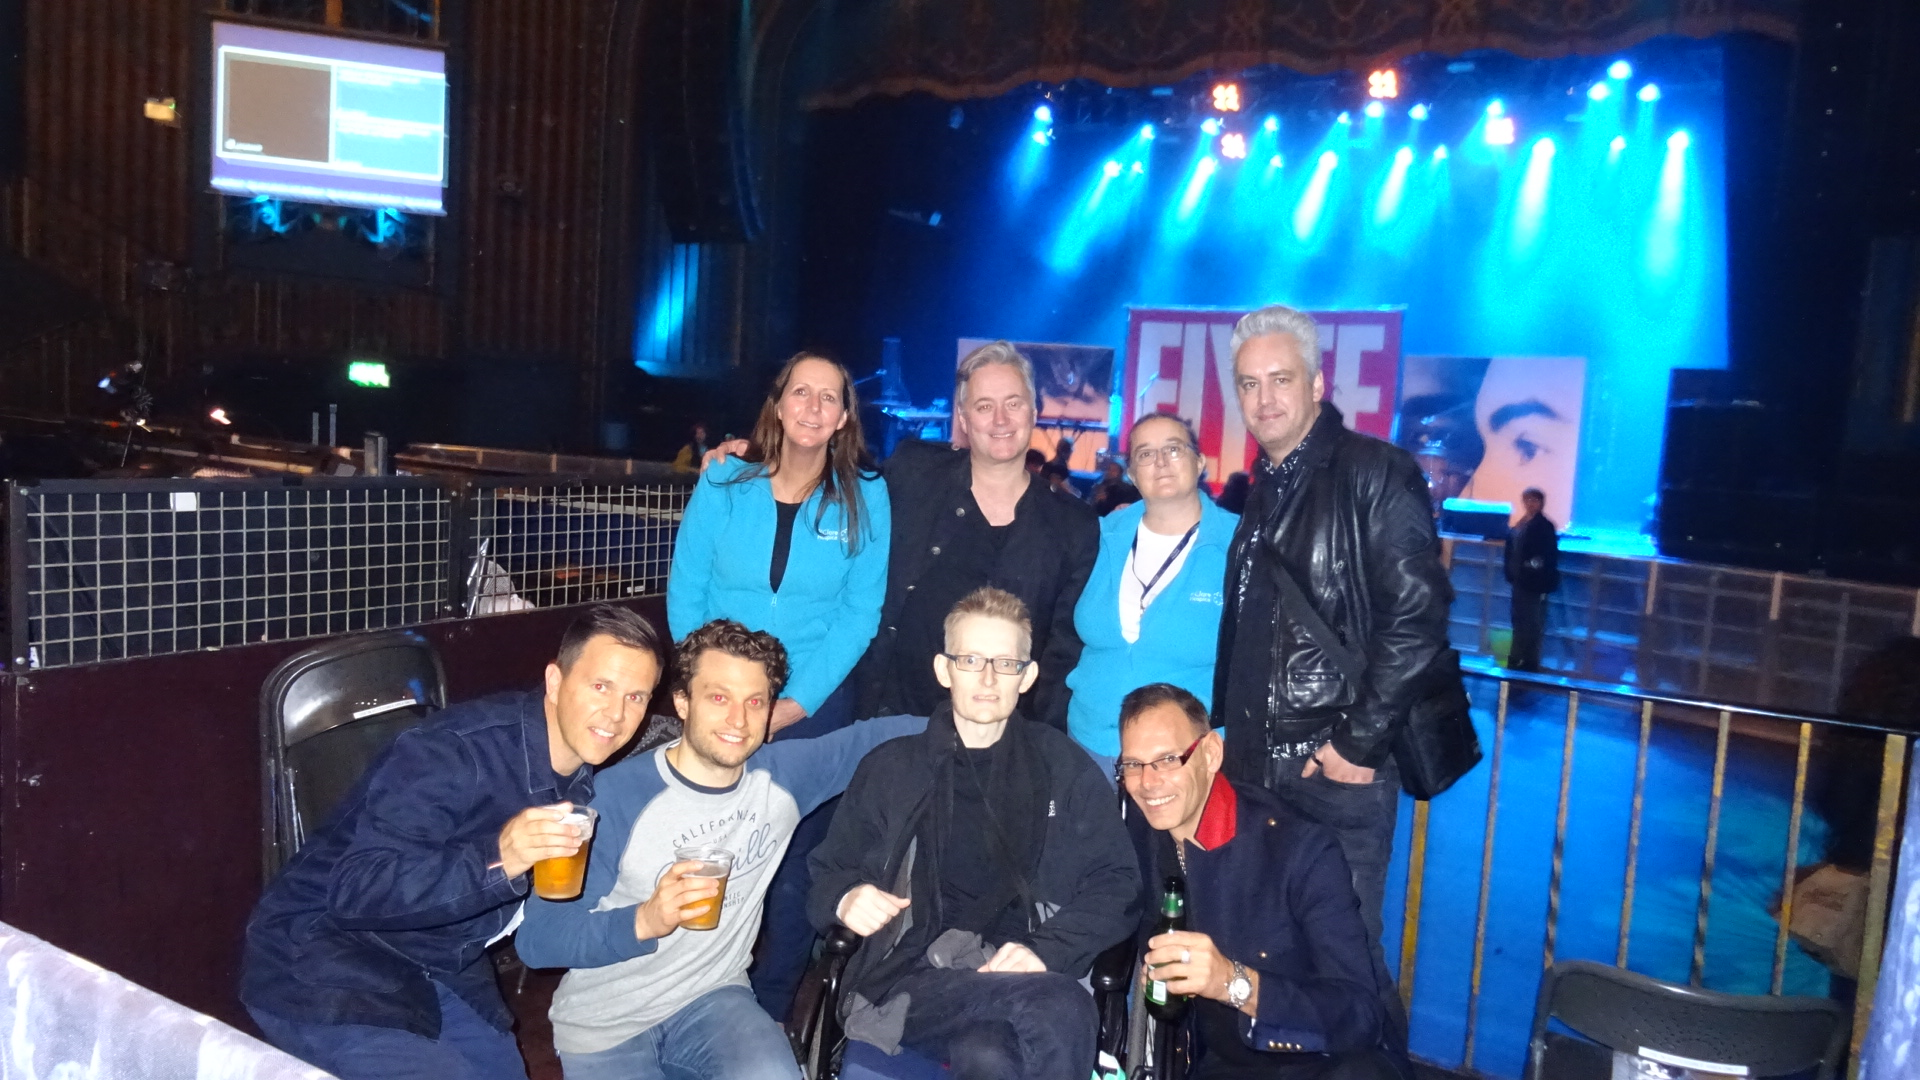 Keith with staff and friends at Lemon Twiggs concert